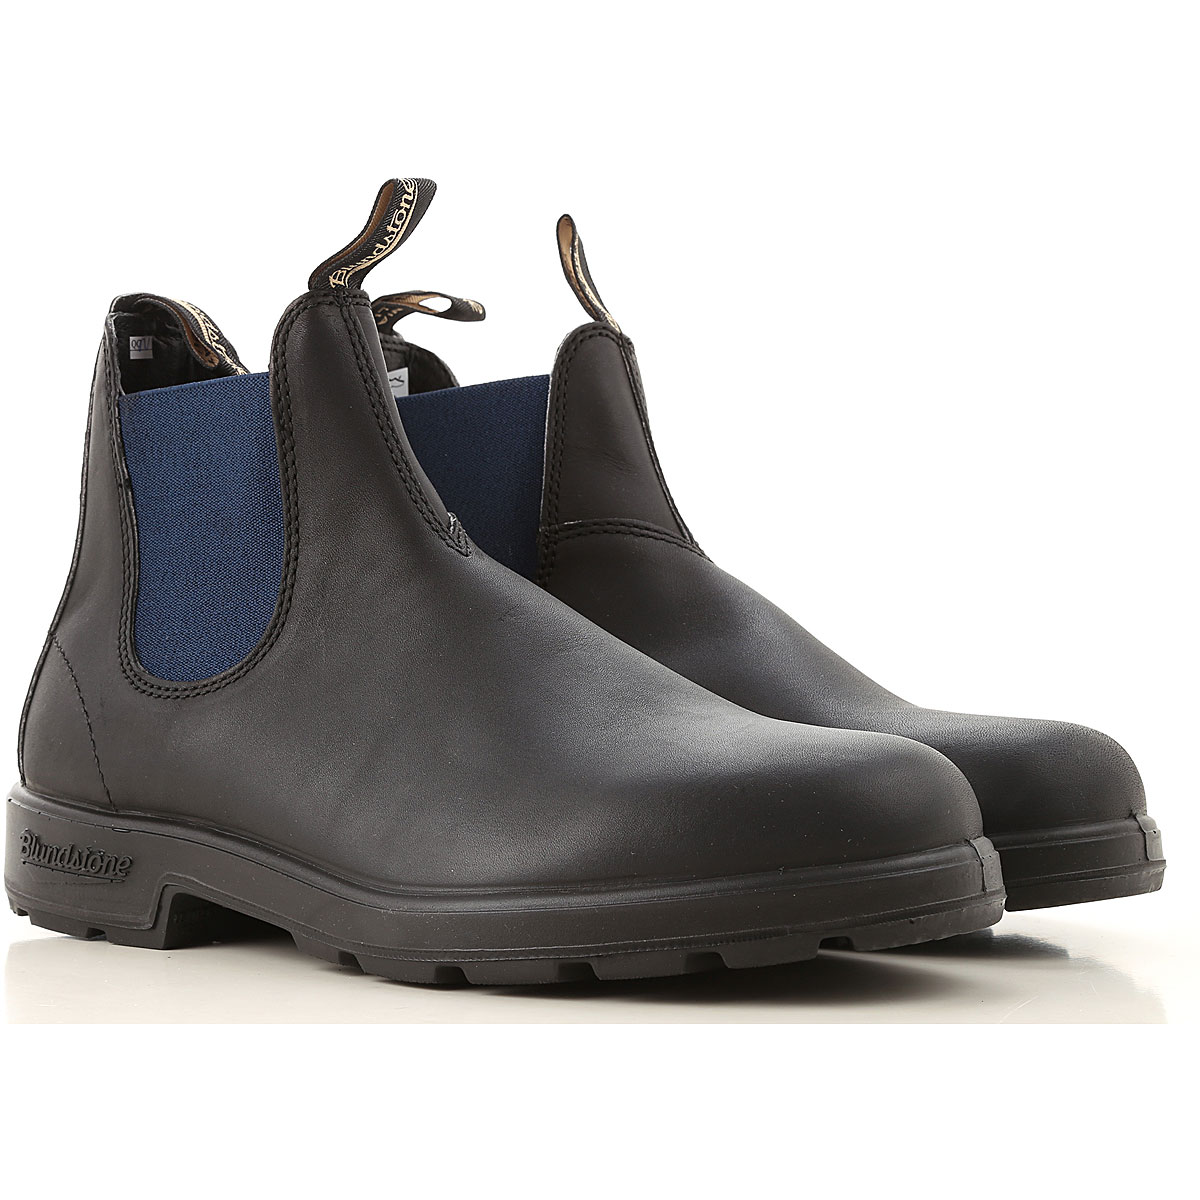 Blundstone Boots for Men, Booties On Sale, Black, Leather, 2019, AU/UK 7 - US 8 AU/UK 9 - US 10 AU/UK 12 - US 13